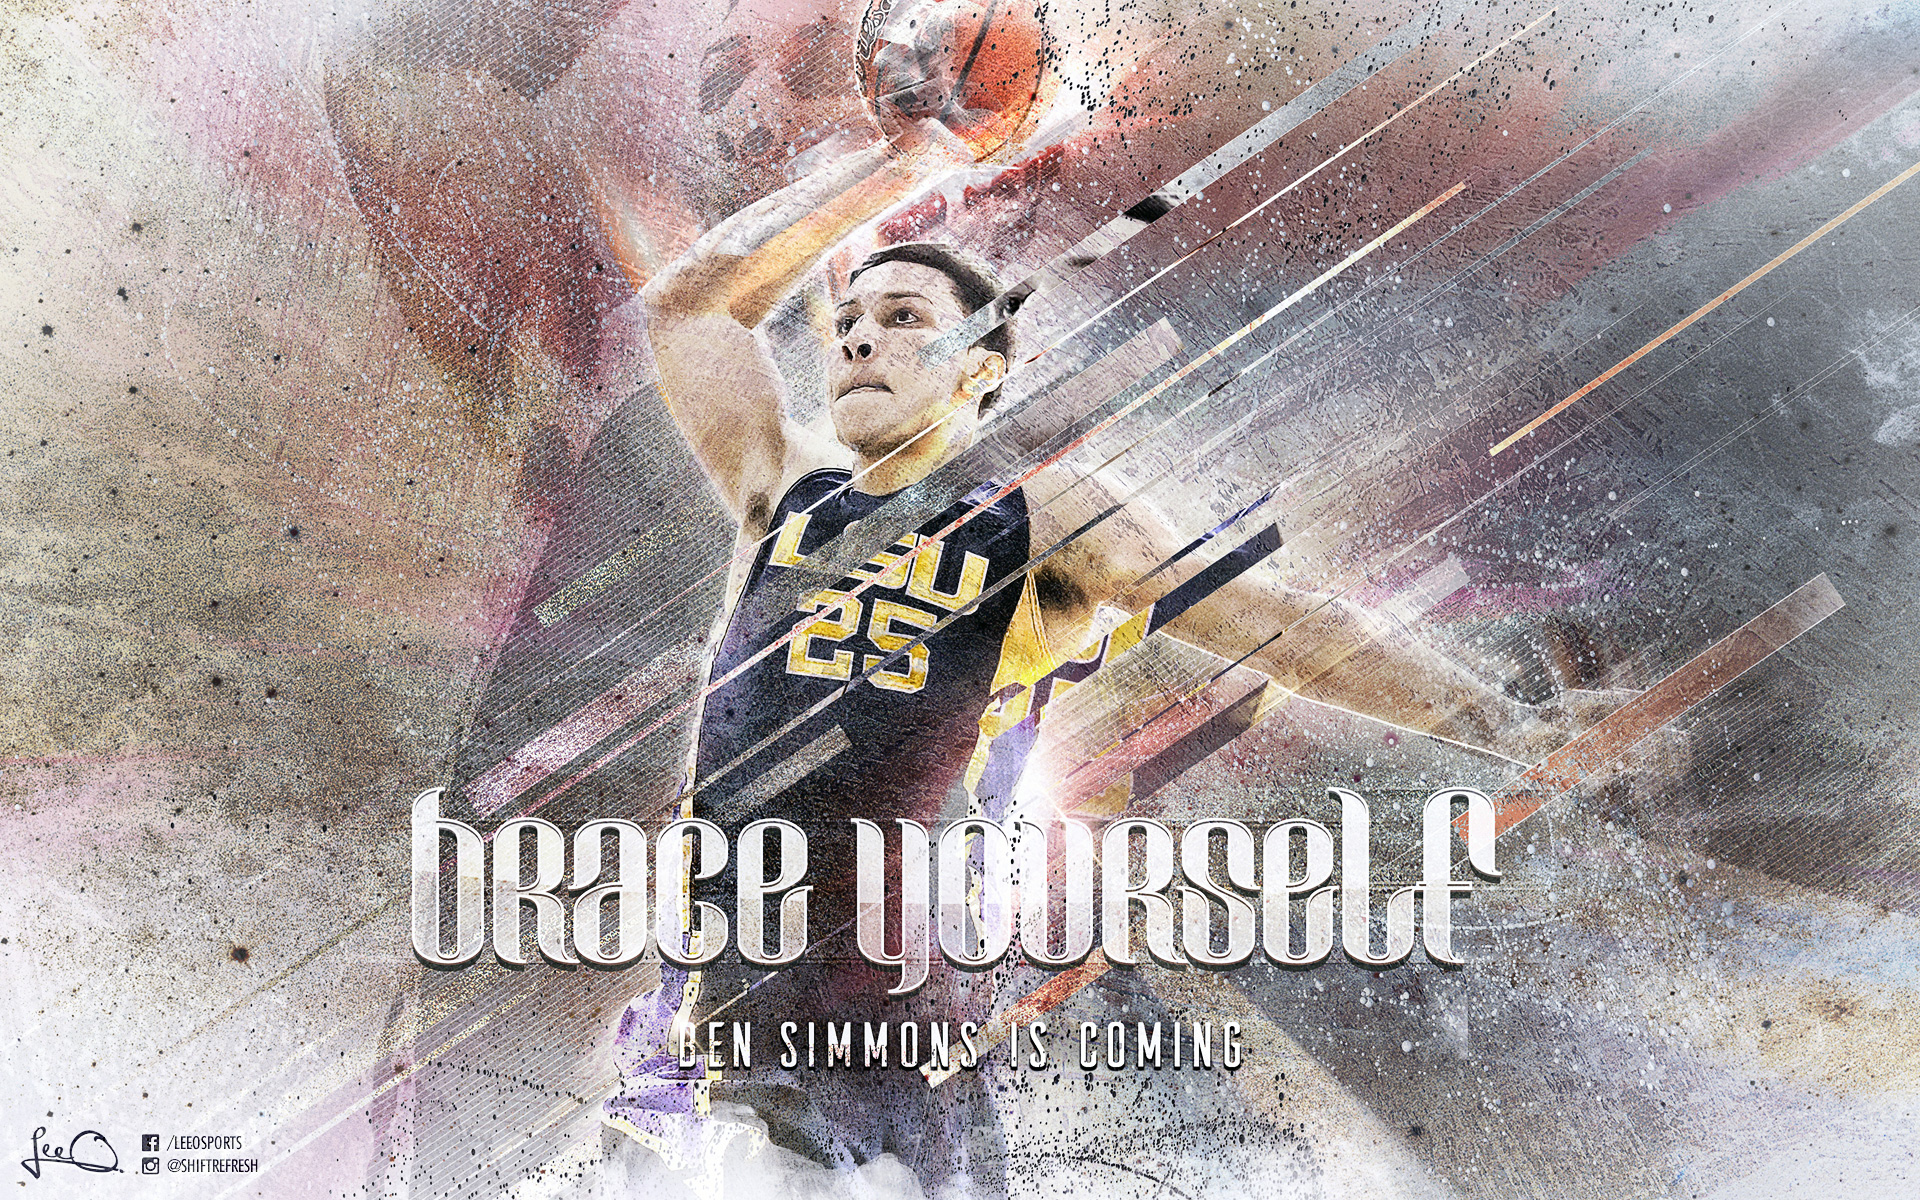 Ben Simmons LSU Tigers 1920x1200 Wallpaper